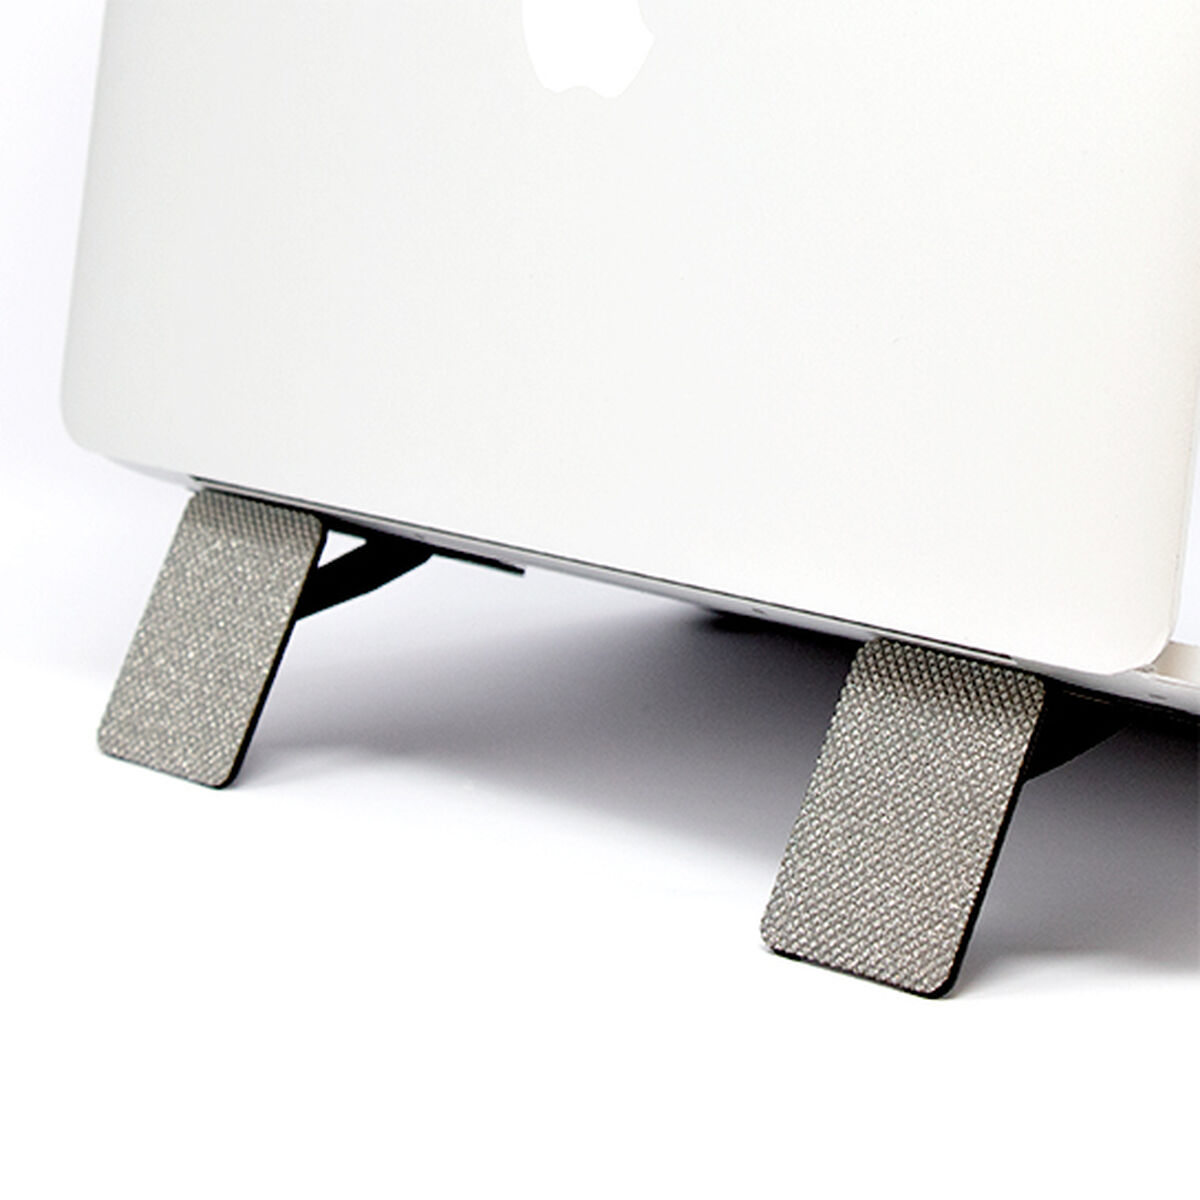 Foldable Lightweight Laptop Stand (Silver Glitter)